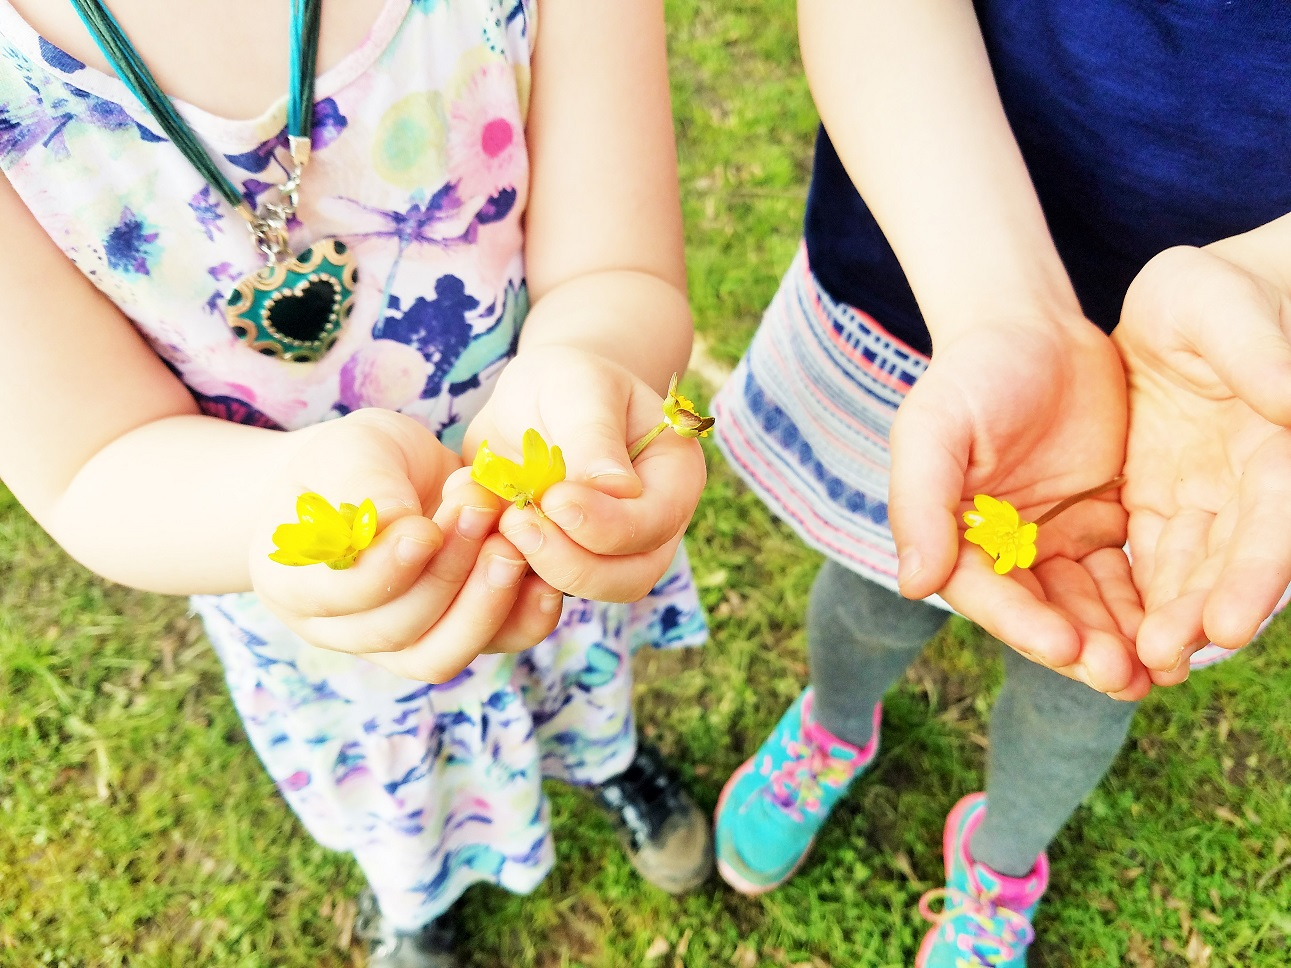 Future Teenage Kids - small children holding out buttercups flowers - make your choice